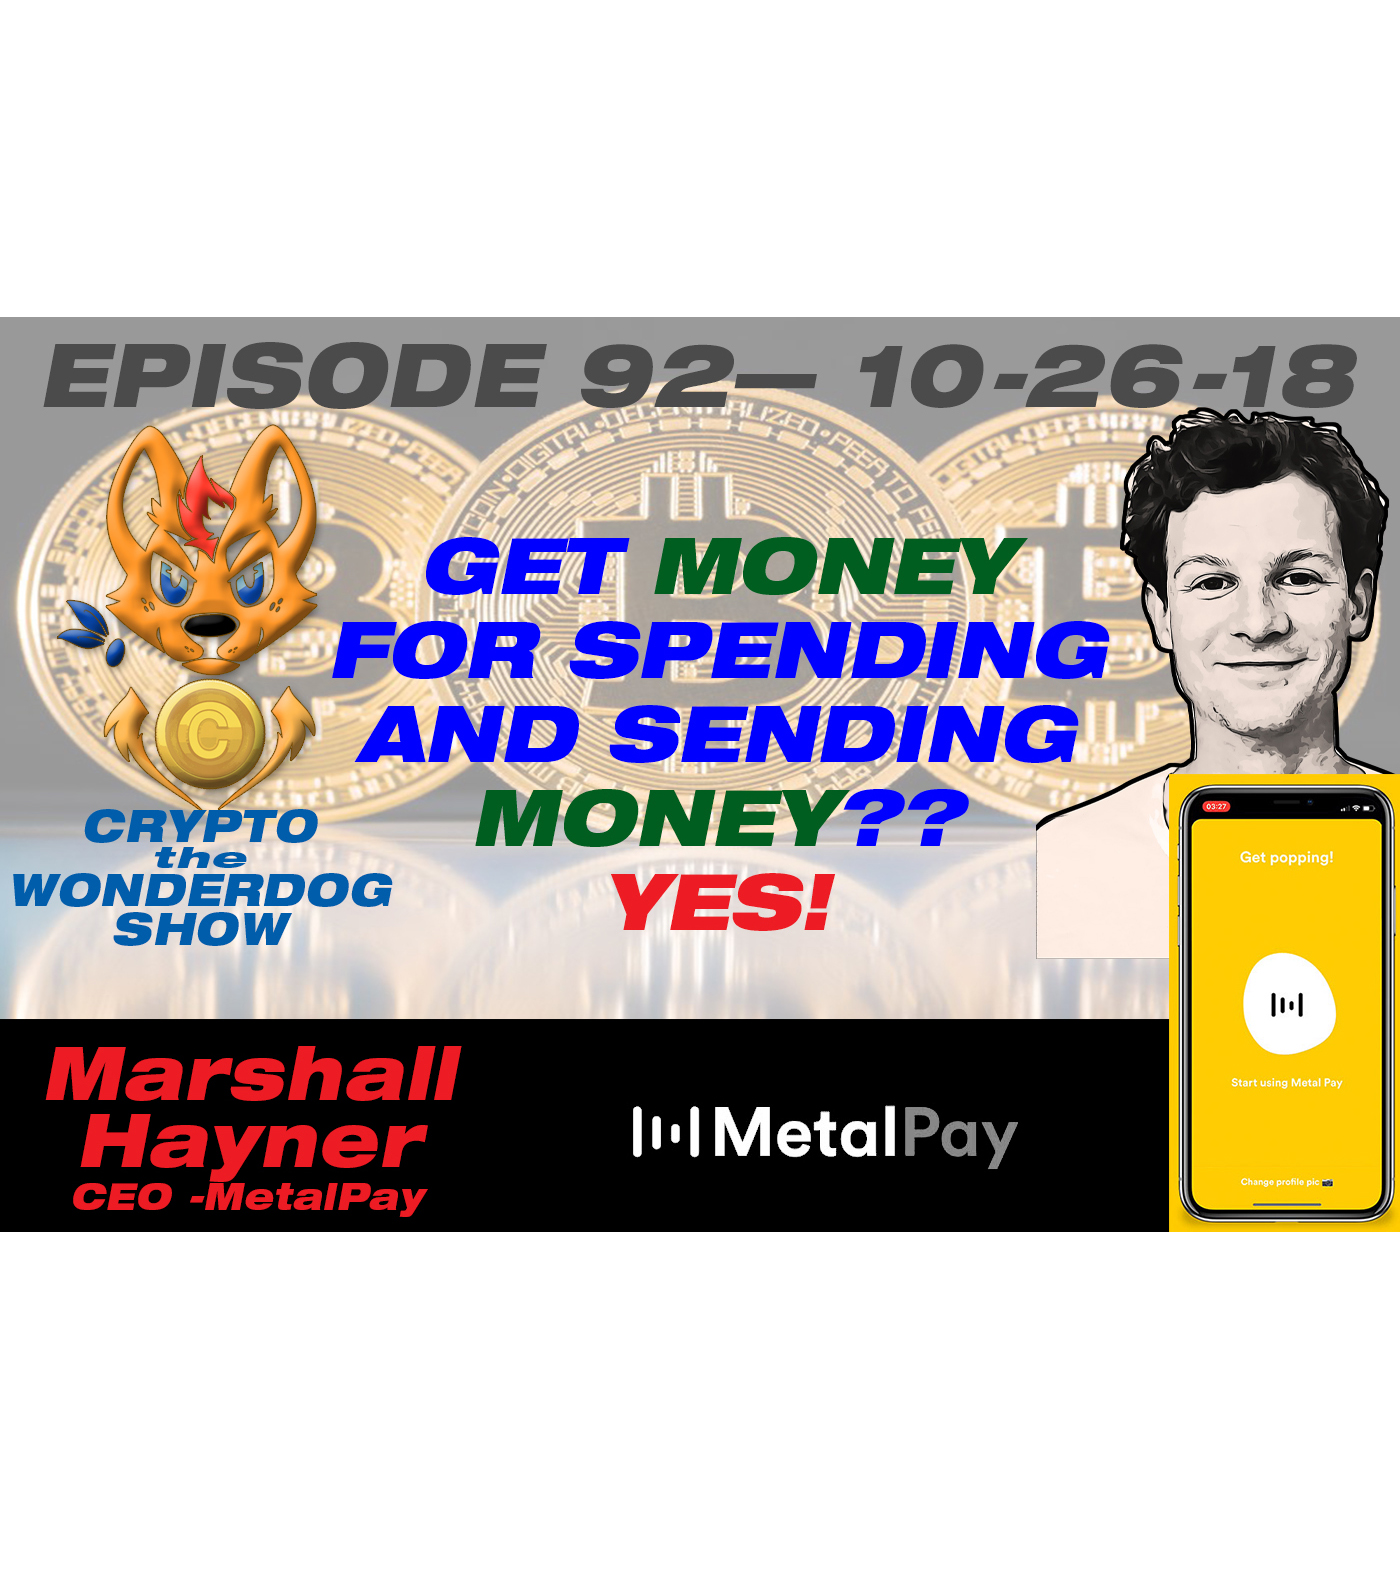 E92 - How you can earn cryptocurrency when youshop or pay your friends? YES! Metal Pay! FREE CRYPTOCURRENCY!